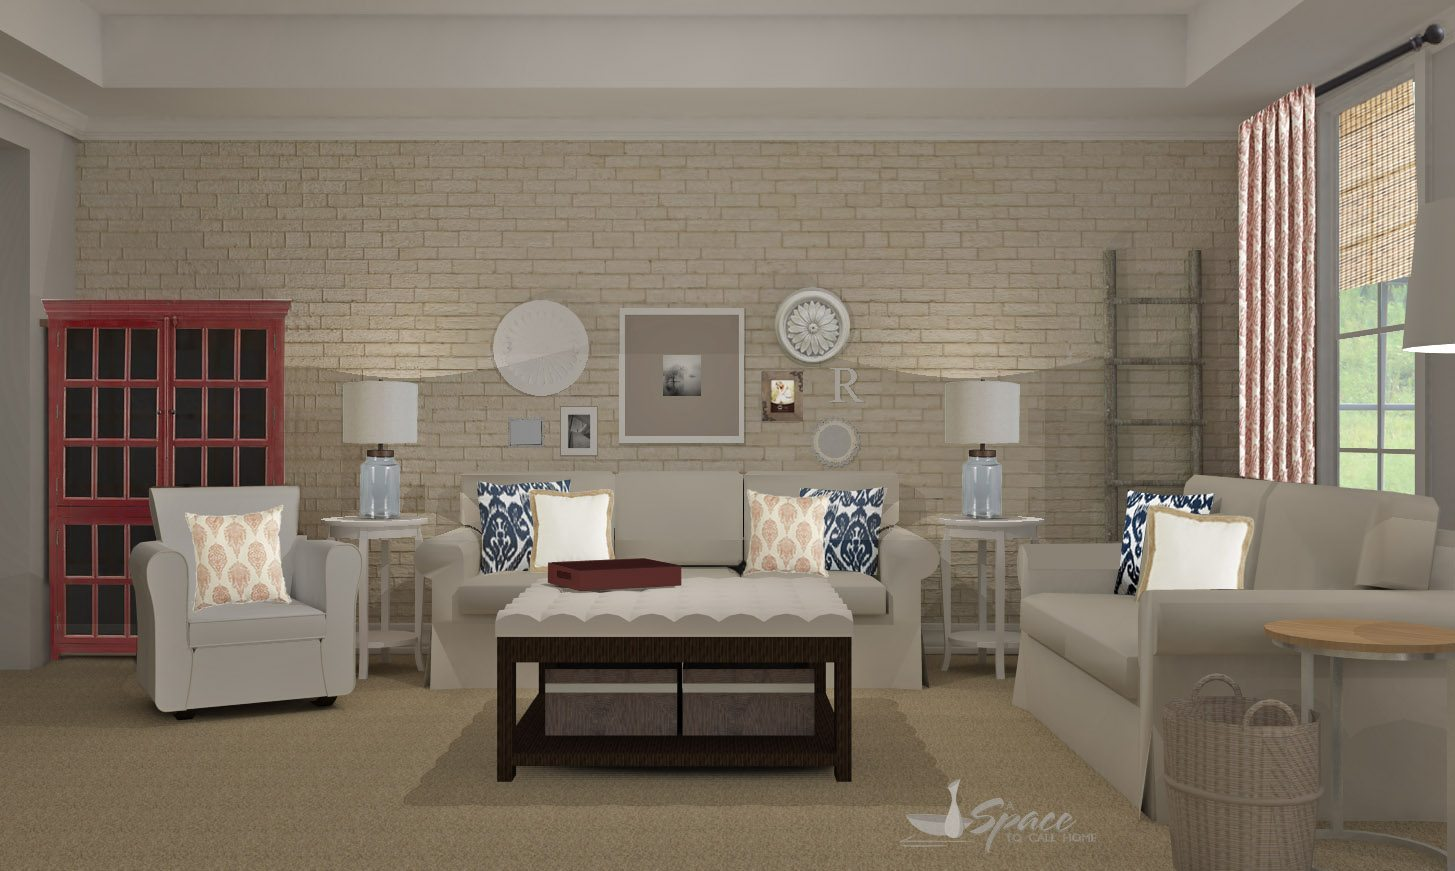 Gray And White Transitional Rustic Living Room With: Rustic Transitional Living Room Design